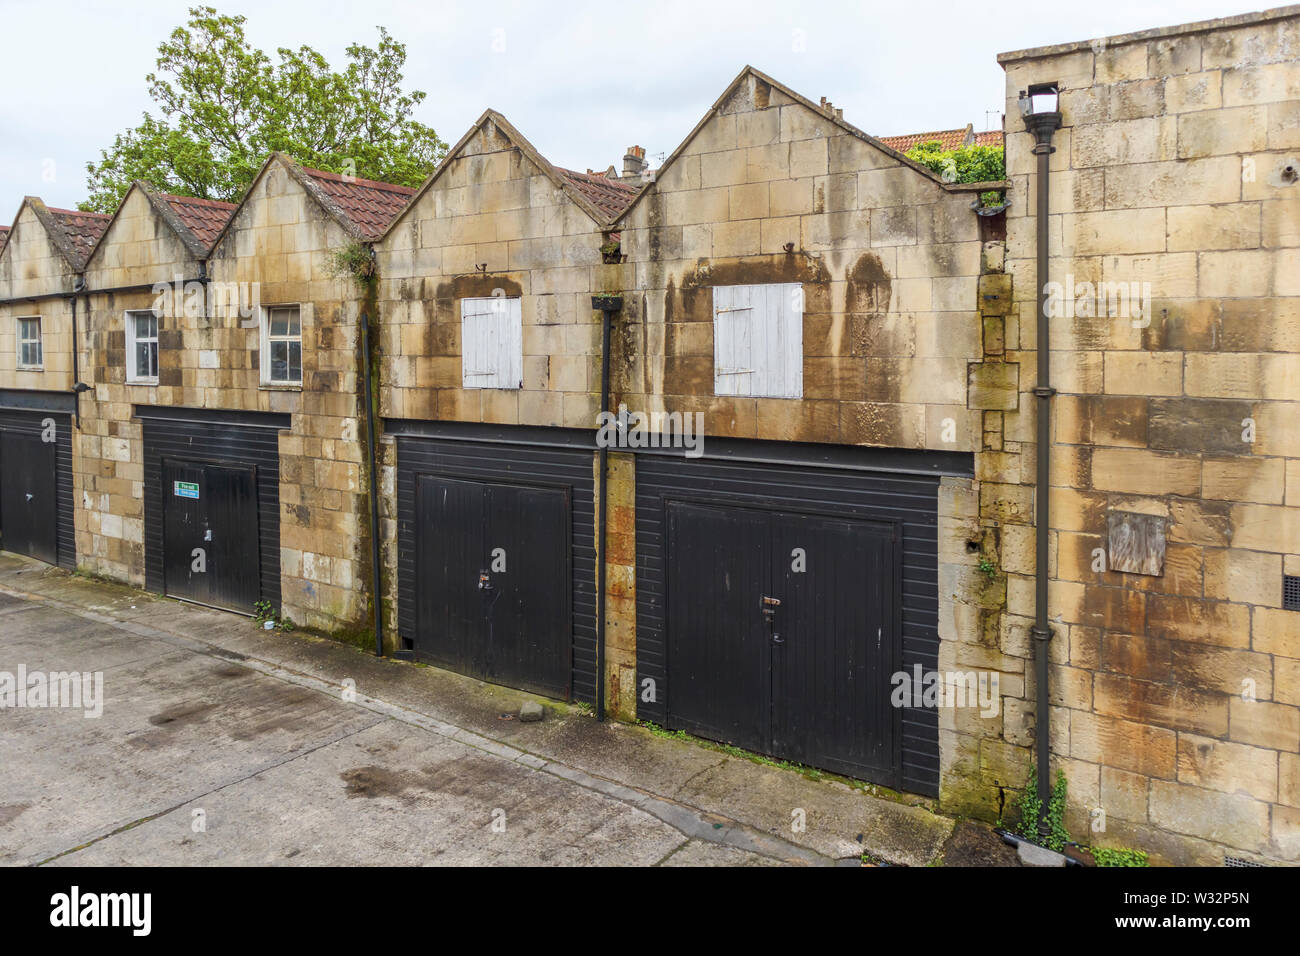 Row of historic gabled stable buildings now used as lock-up garages in Bath, the largest city in Somerset, south-west England, UK - Stock Image